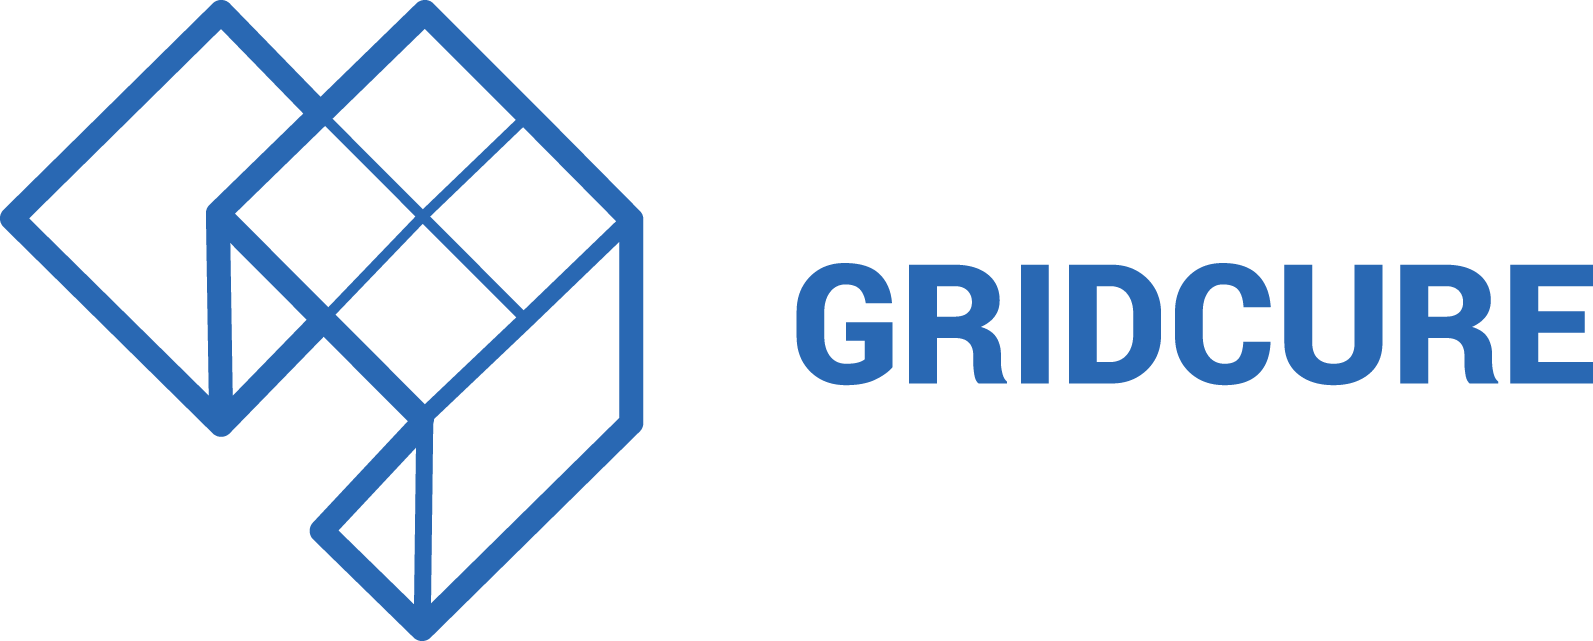 GridCure.png